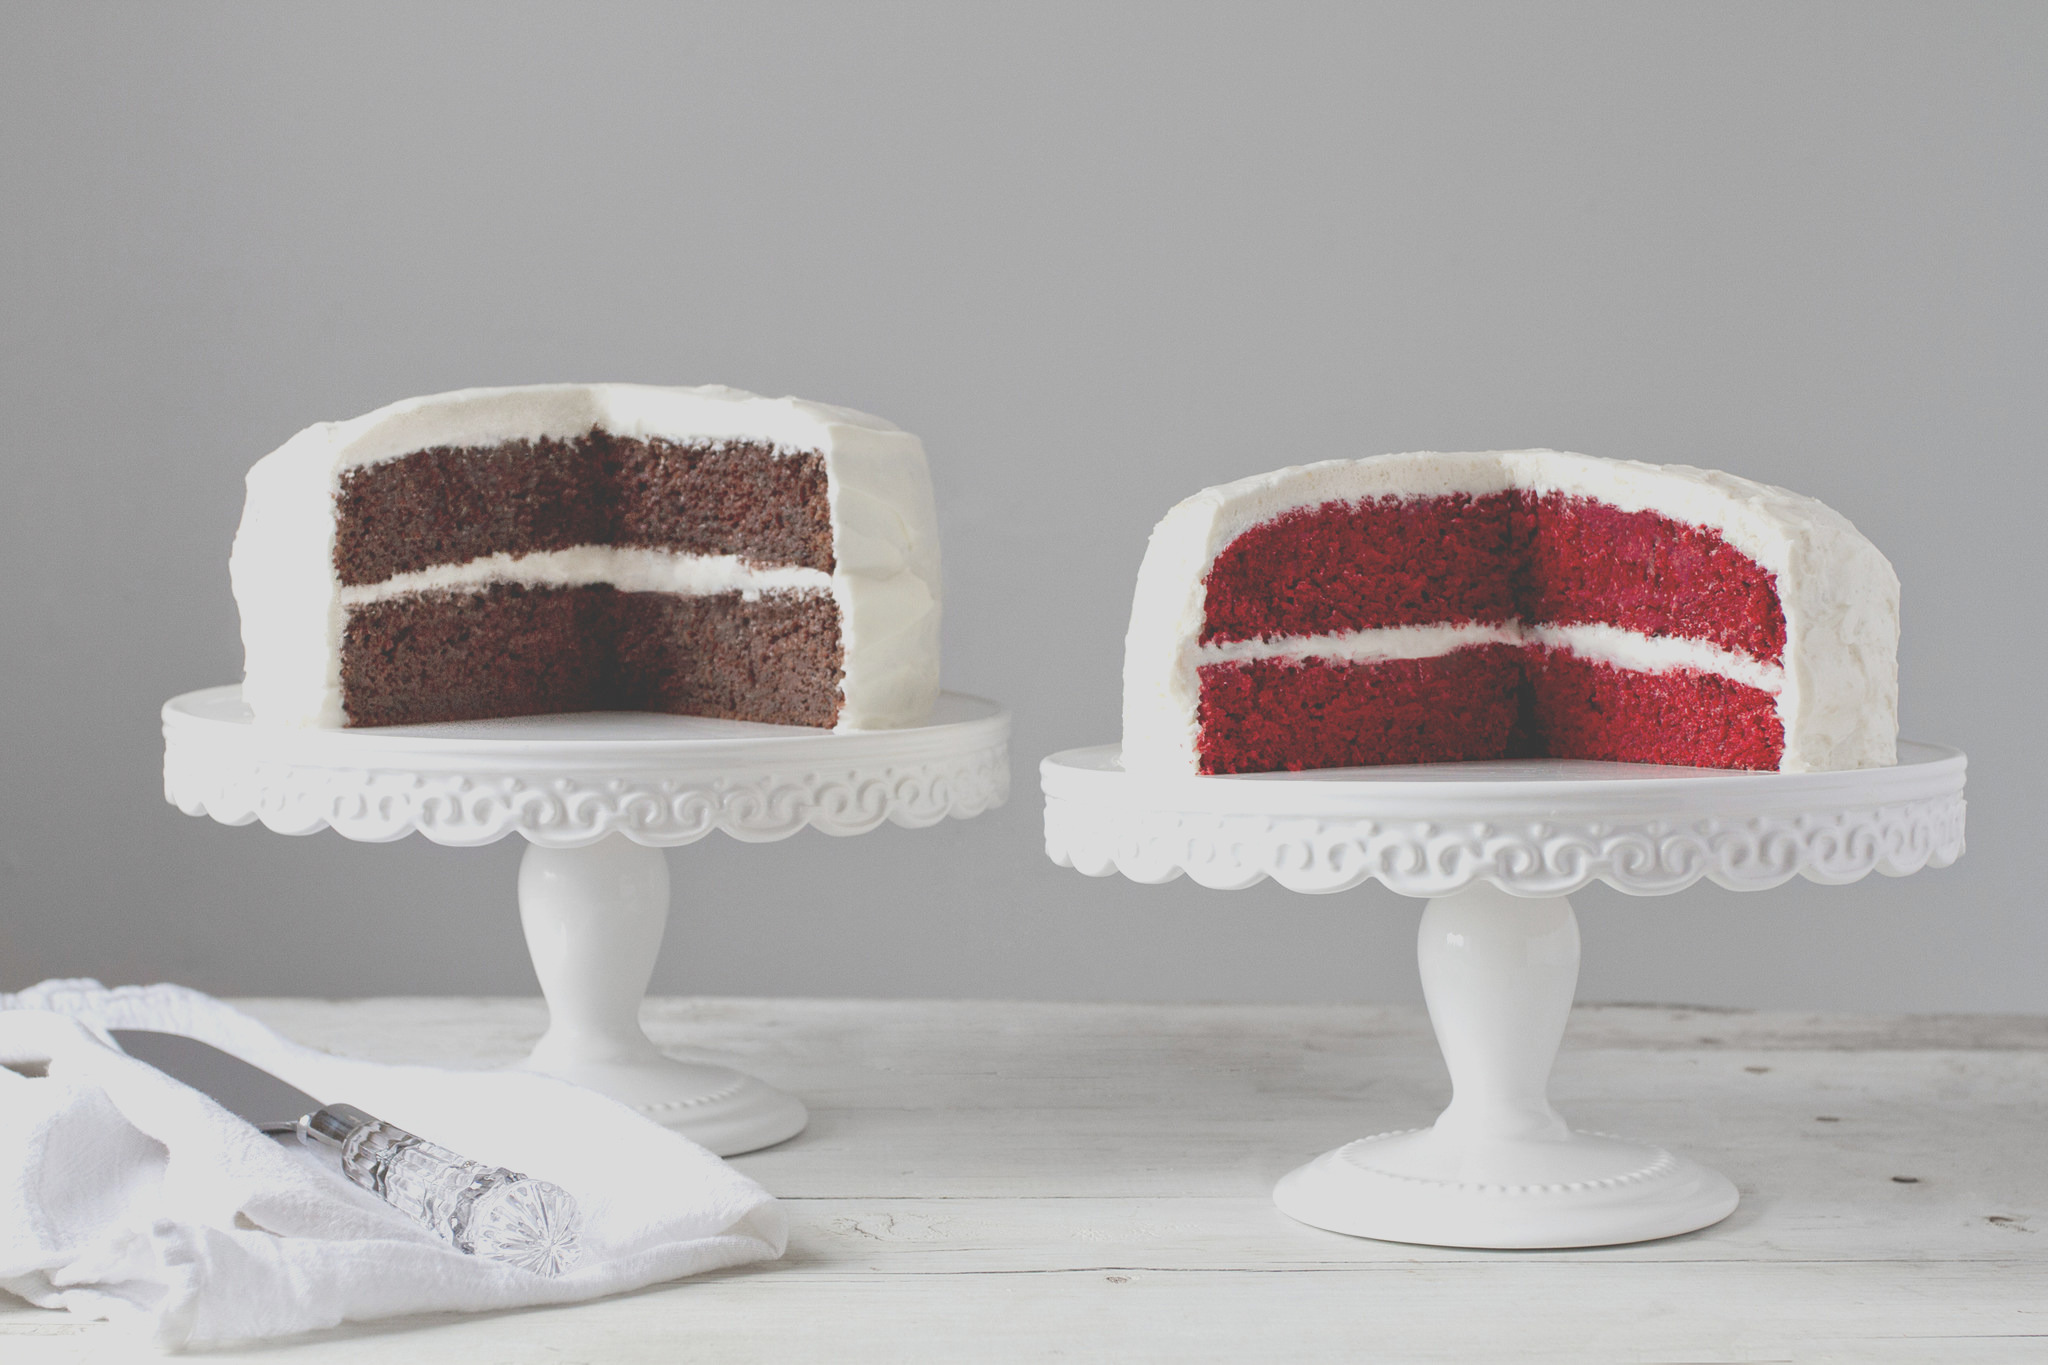 red velvet cake from gimmick to american classic